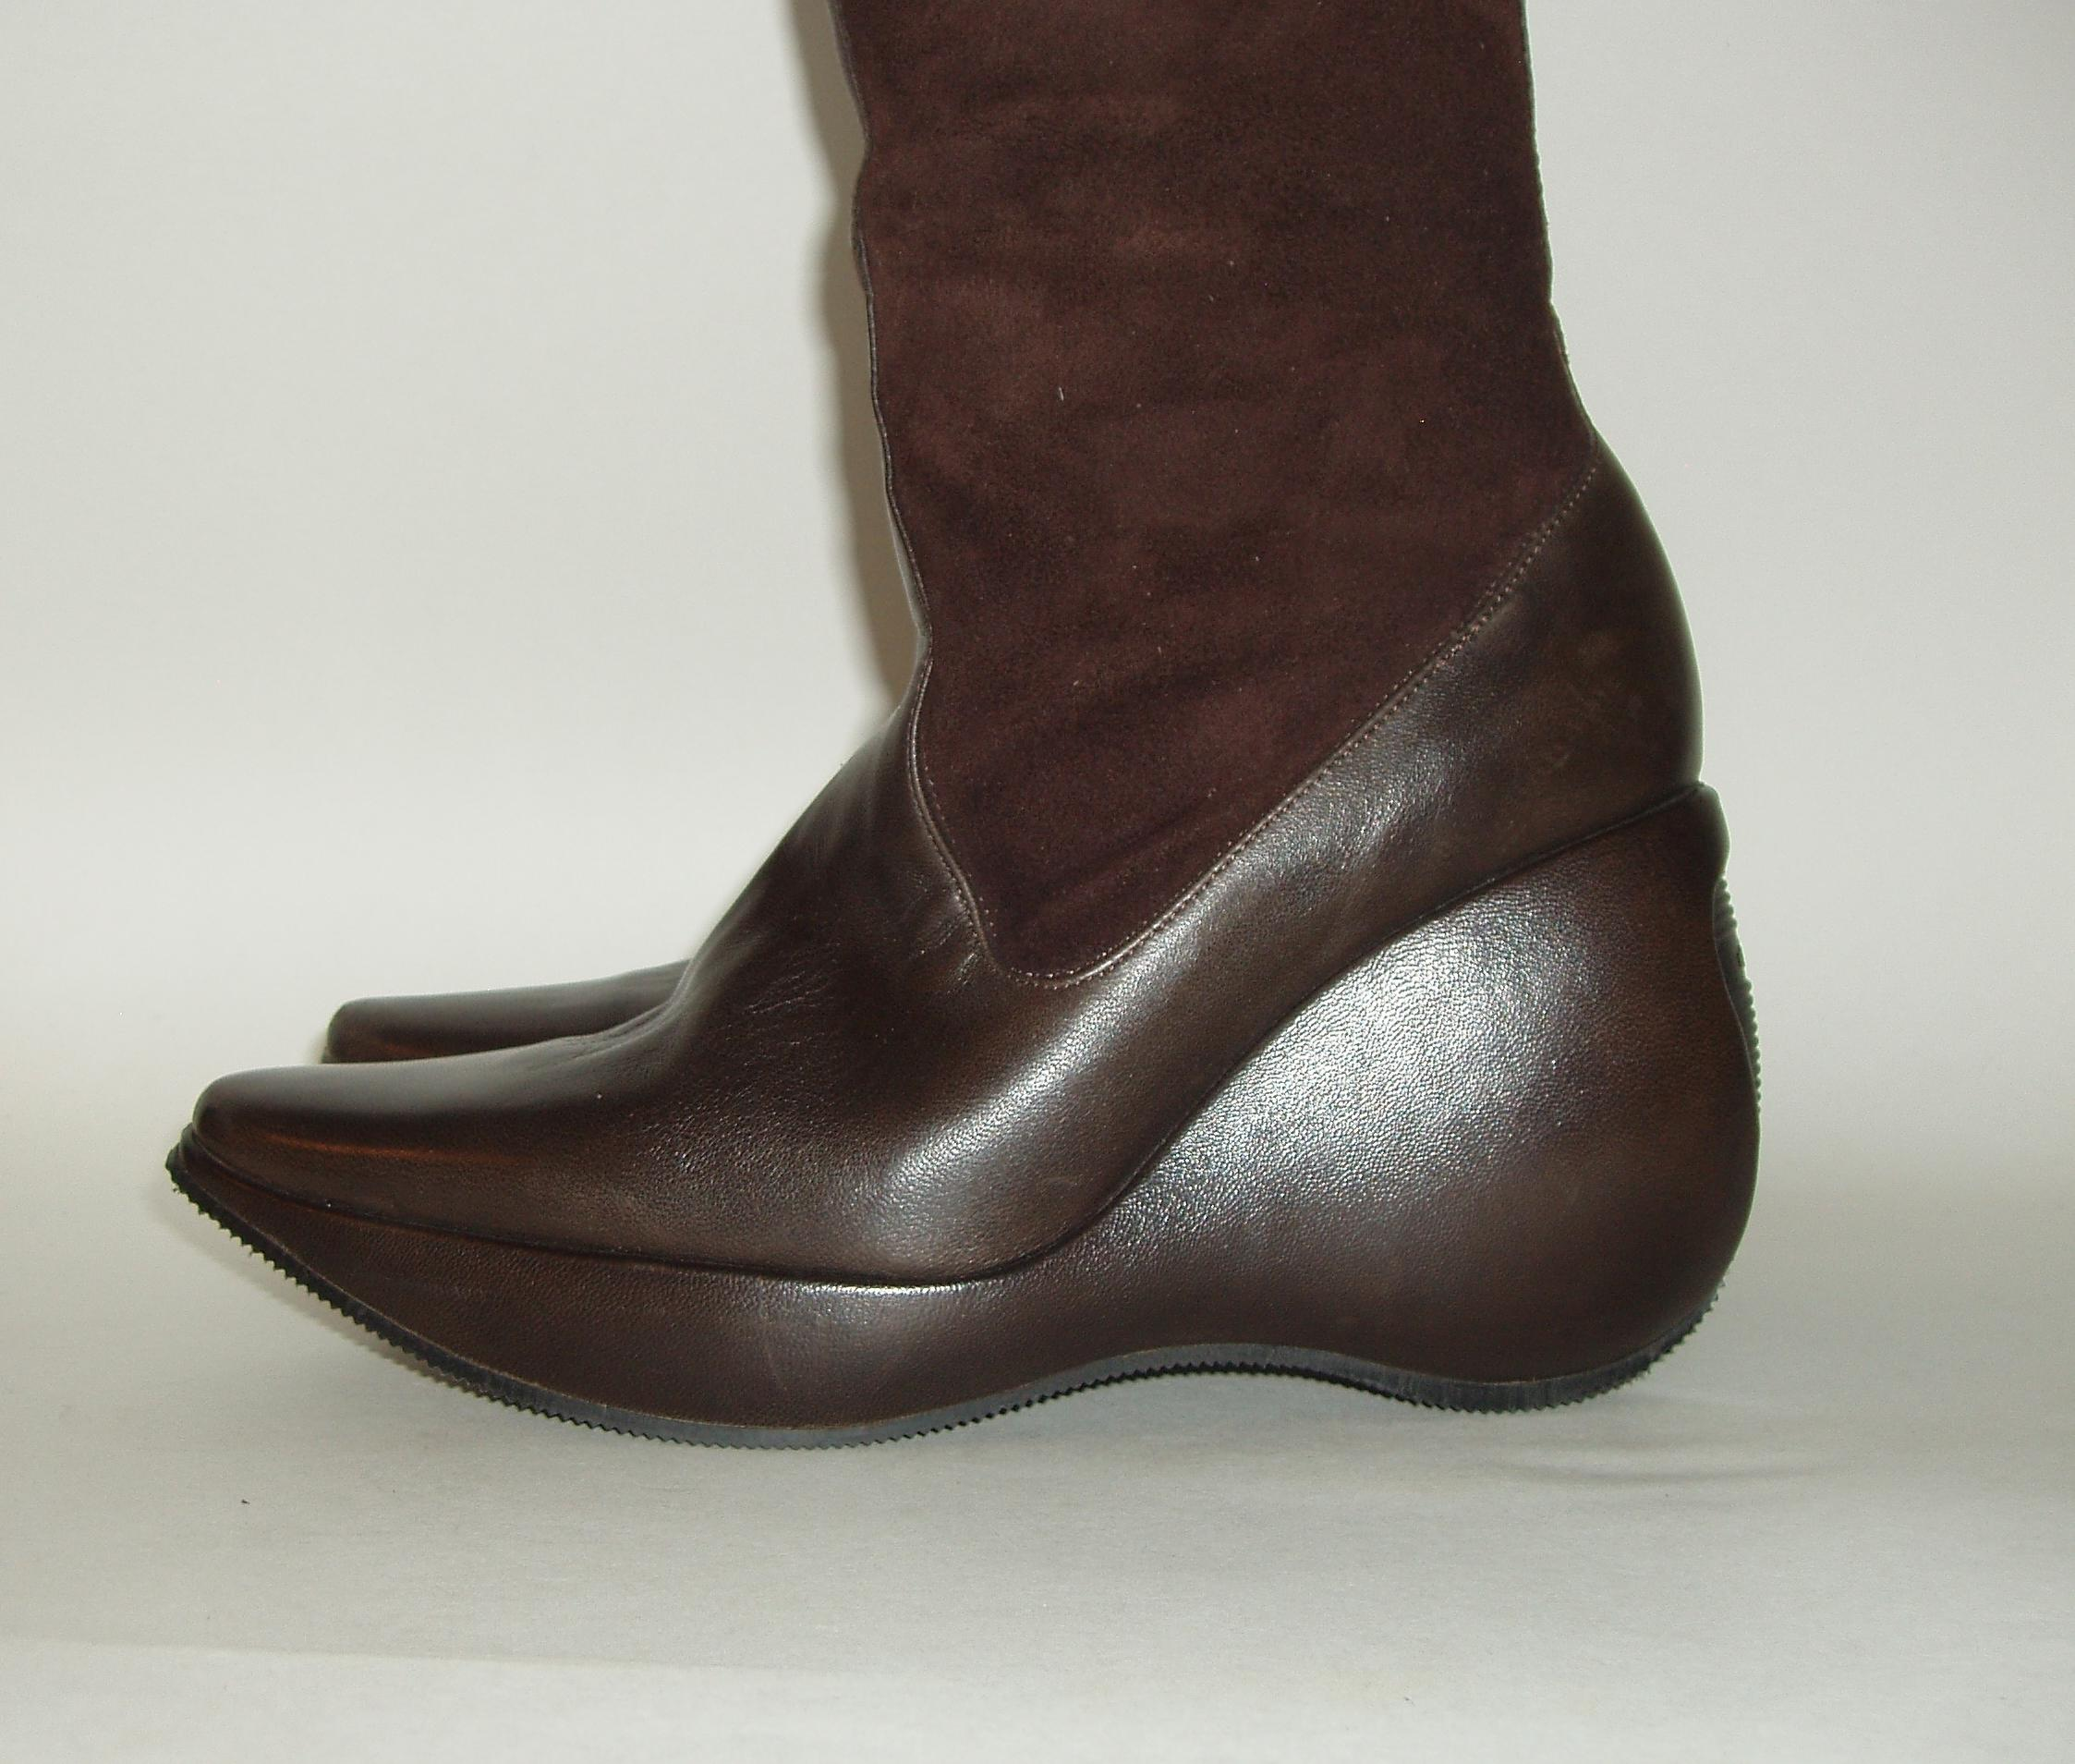 Stephane Kélian Leather Boots ldM3q